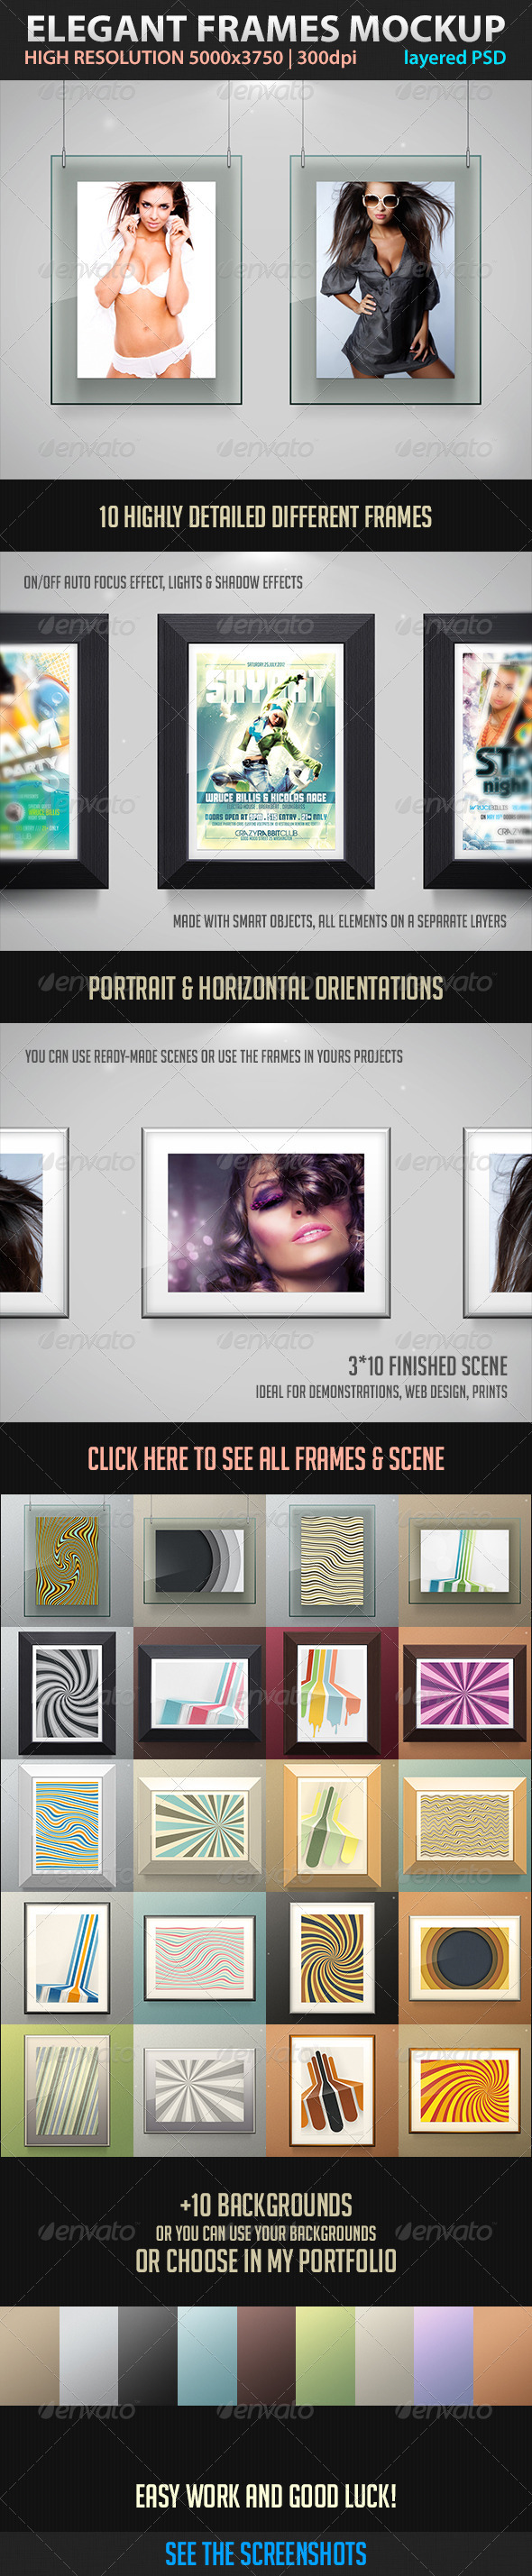 Elegant Frames Mockup - Miscellaneous Displays